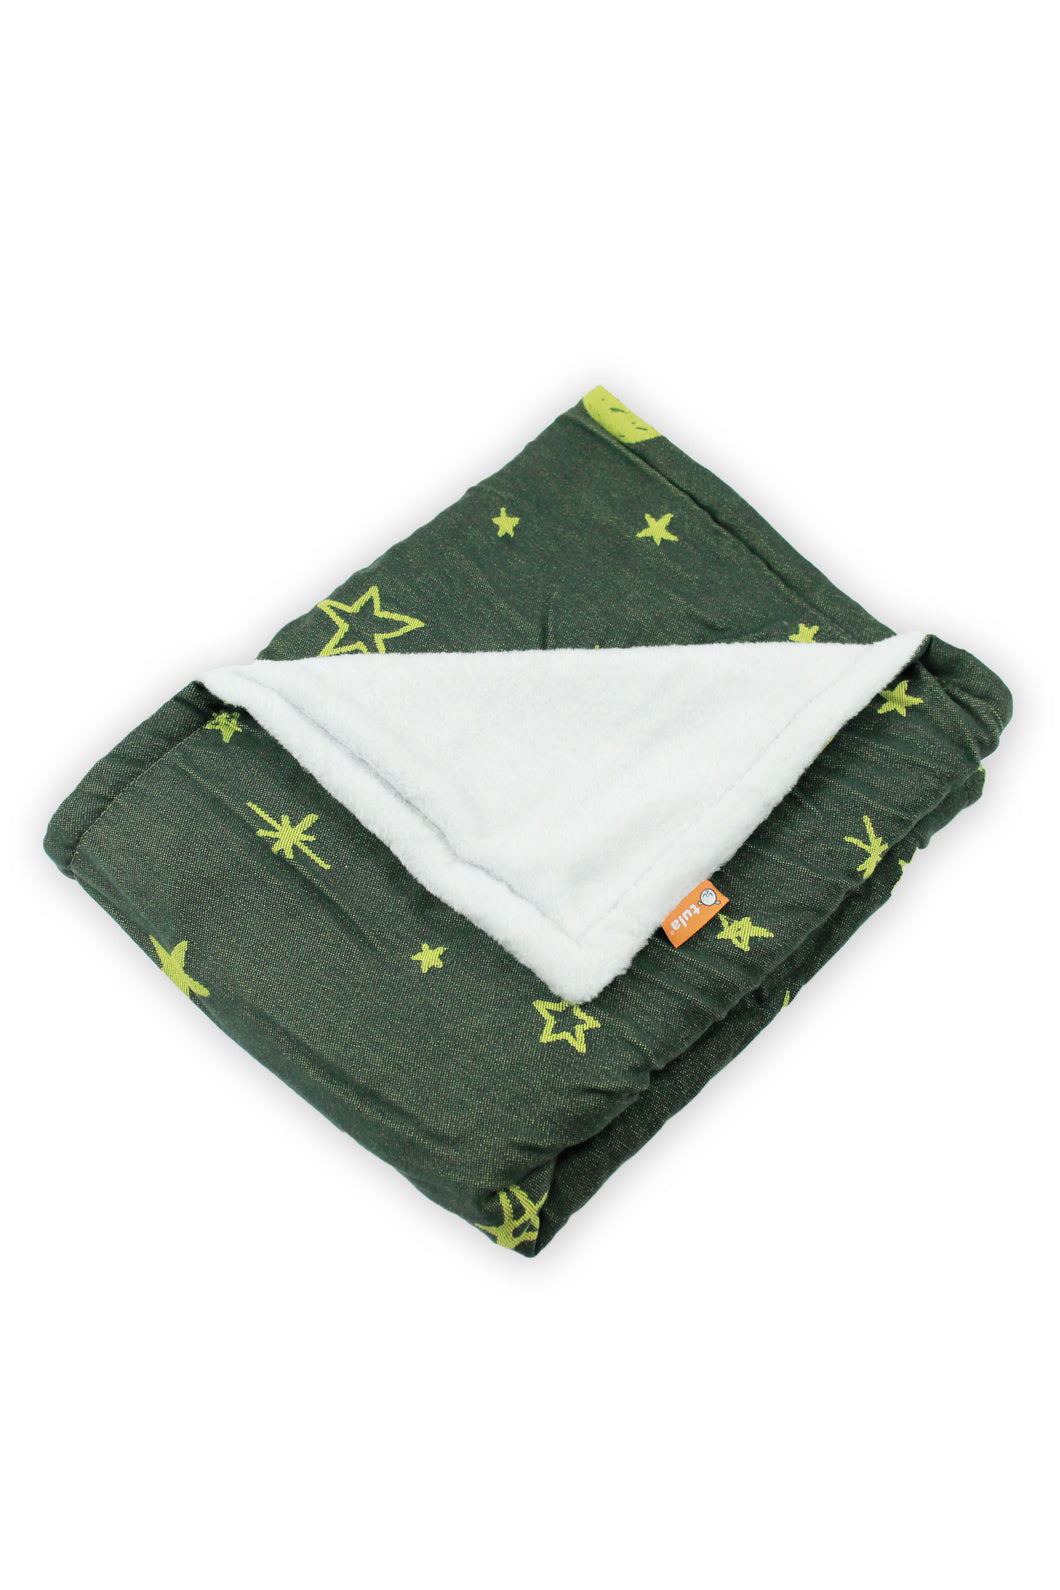 Stargazer - Tula Heirloom Blanket Heirloom Blanket | Baby Tula